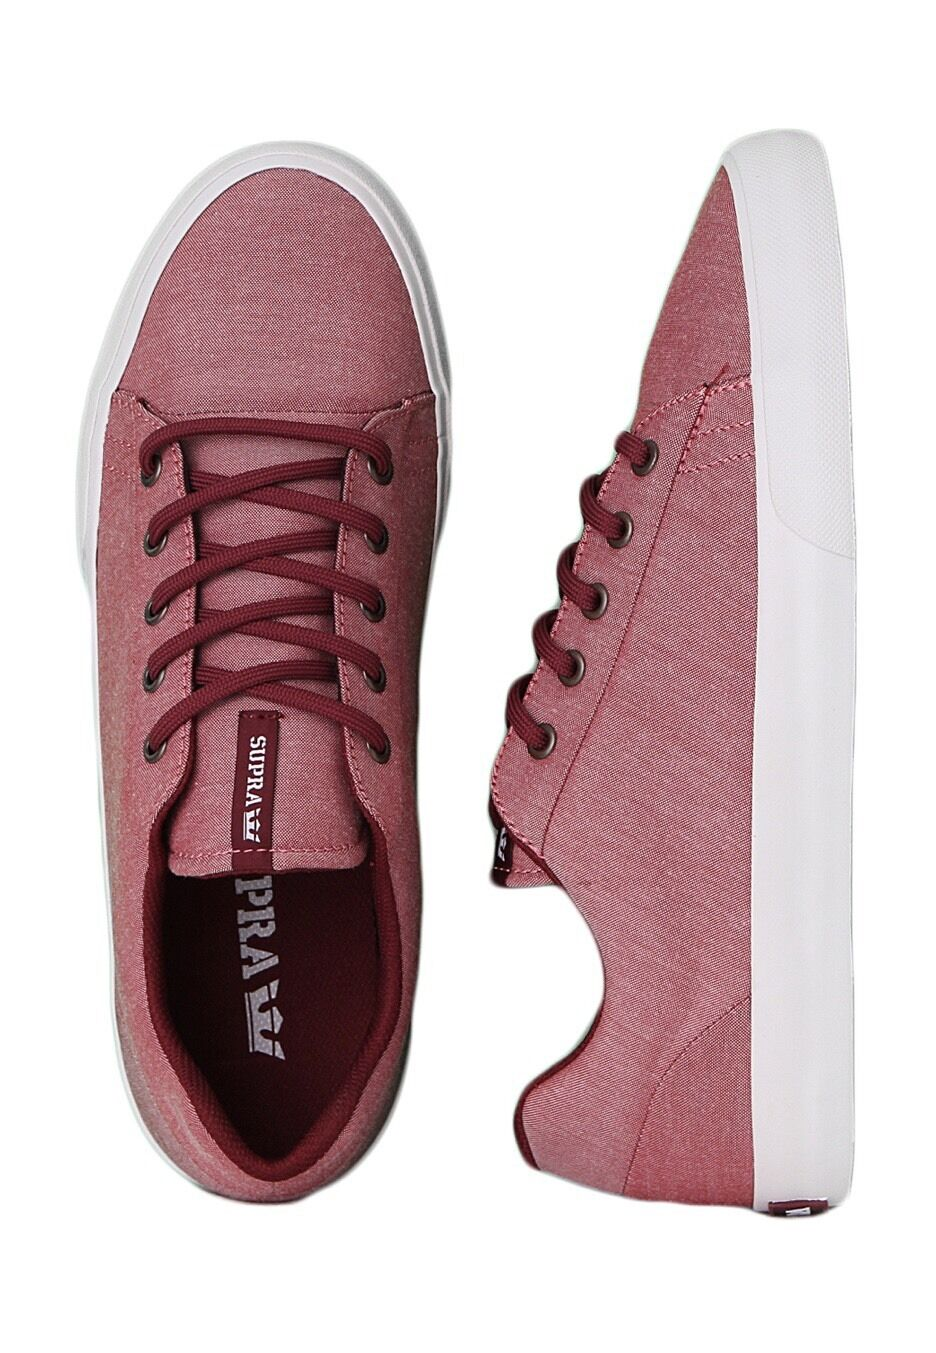 Supra Assault Burgundy White Men's shoes Low Sneakers Size 11